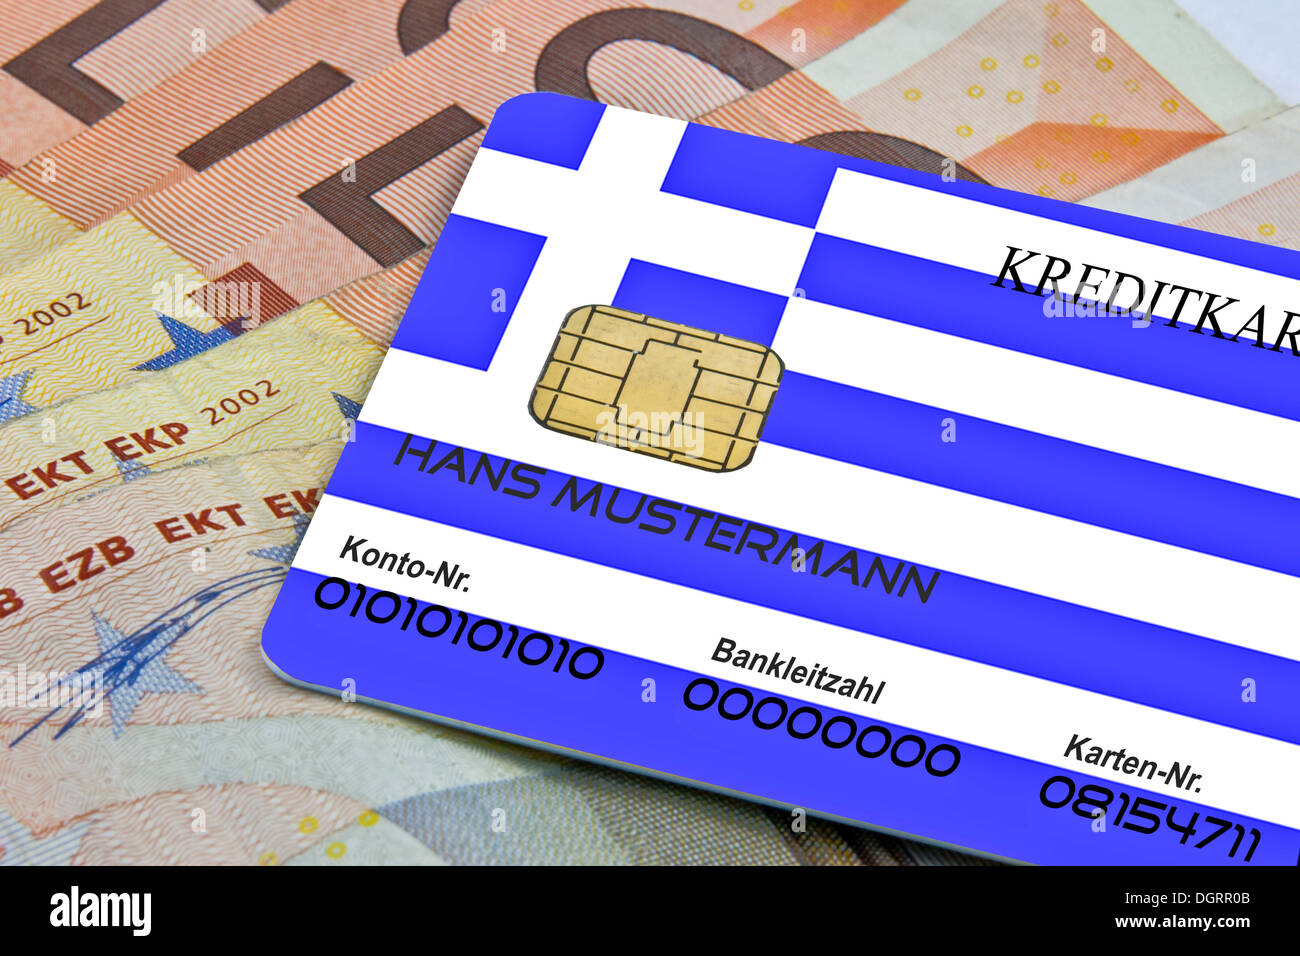 Credit card as means of payment in Greece - Stock Image